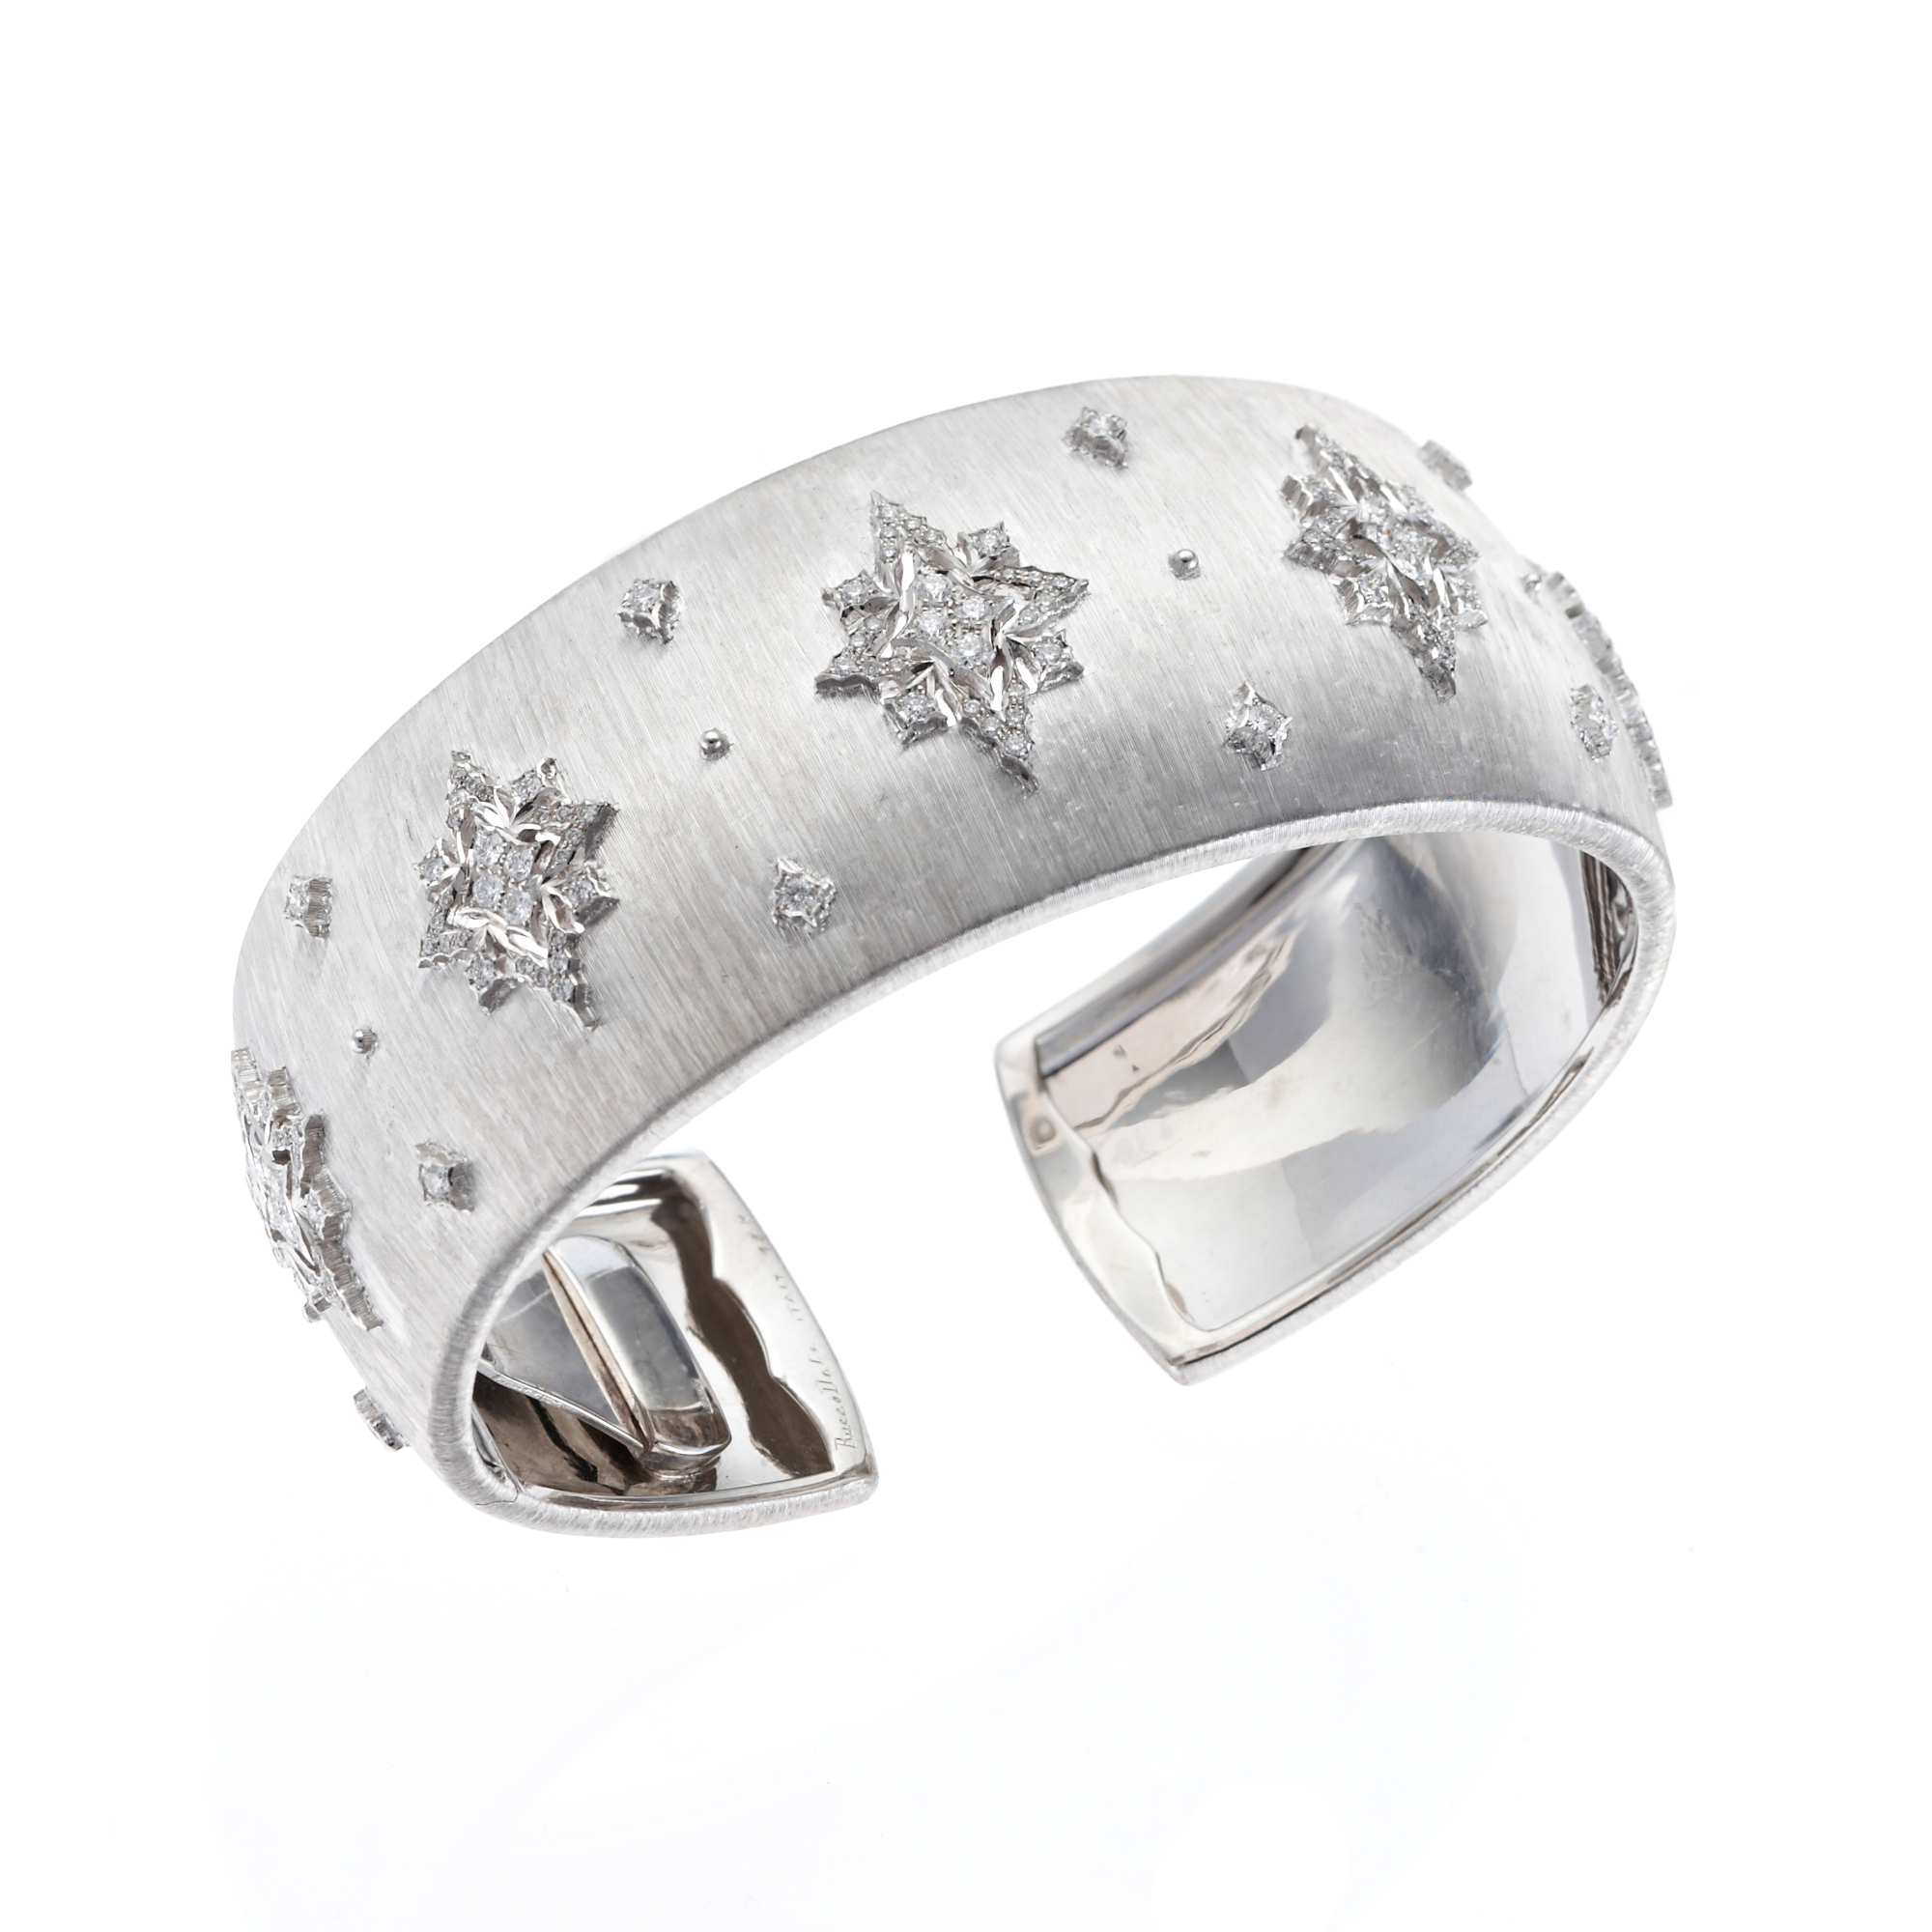 Buccellati Macri Dream Cuff Bracelet with Diamonds